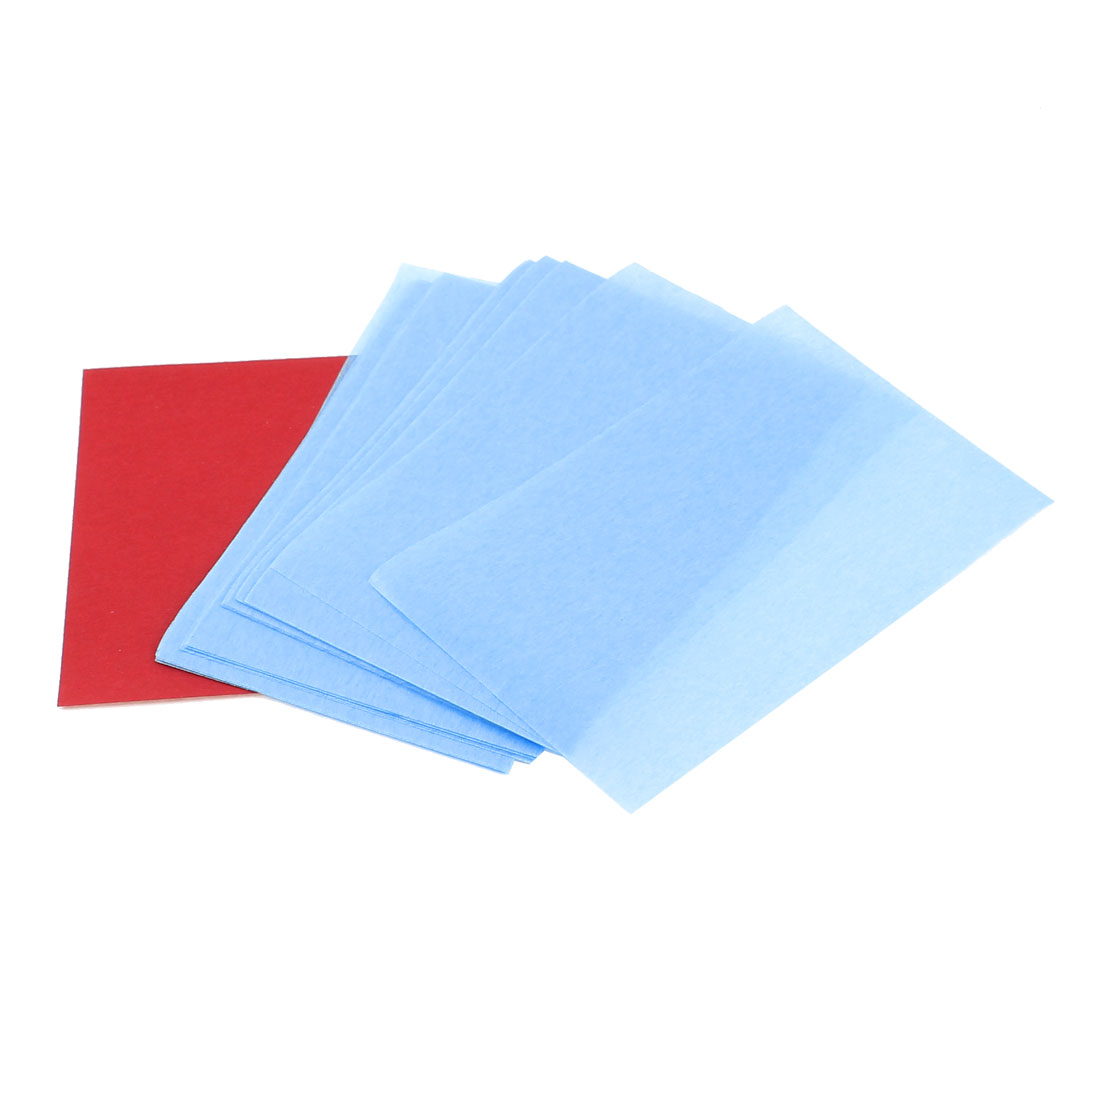 51 Sheets Travel Cosmetic Makeup Facial Oil Blotting Film Paper Blue